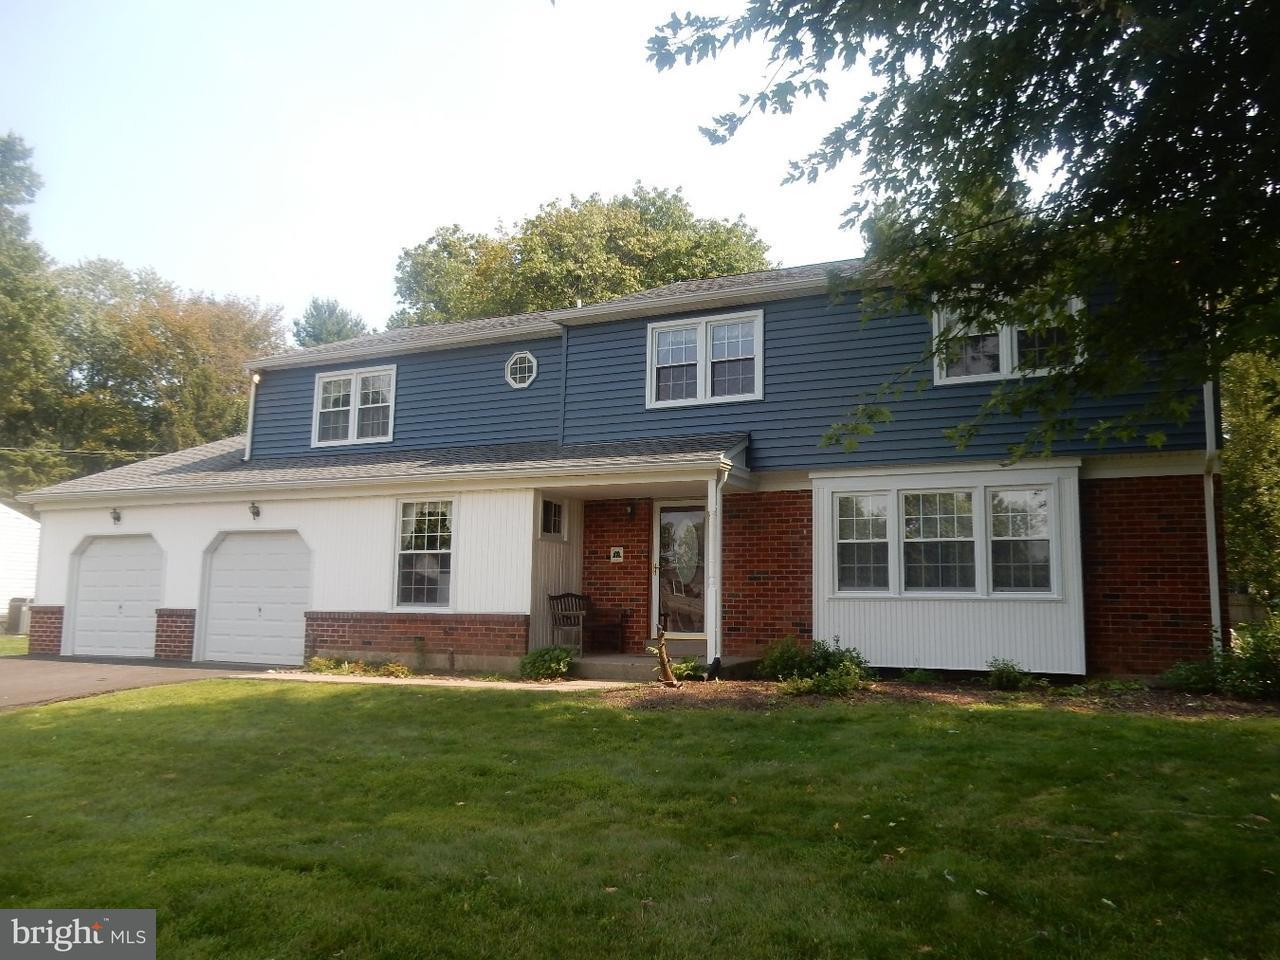 Single Family Home for Rent at 84 SIOUX Road Doylestown, Pennsylvania 18901 United States